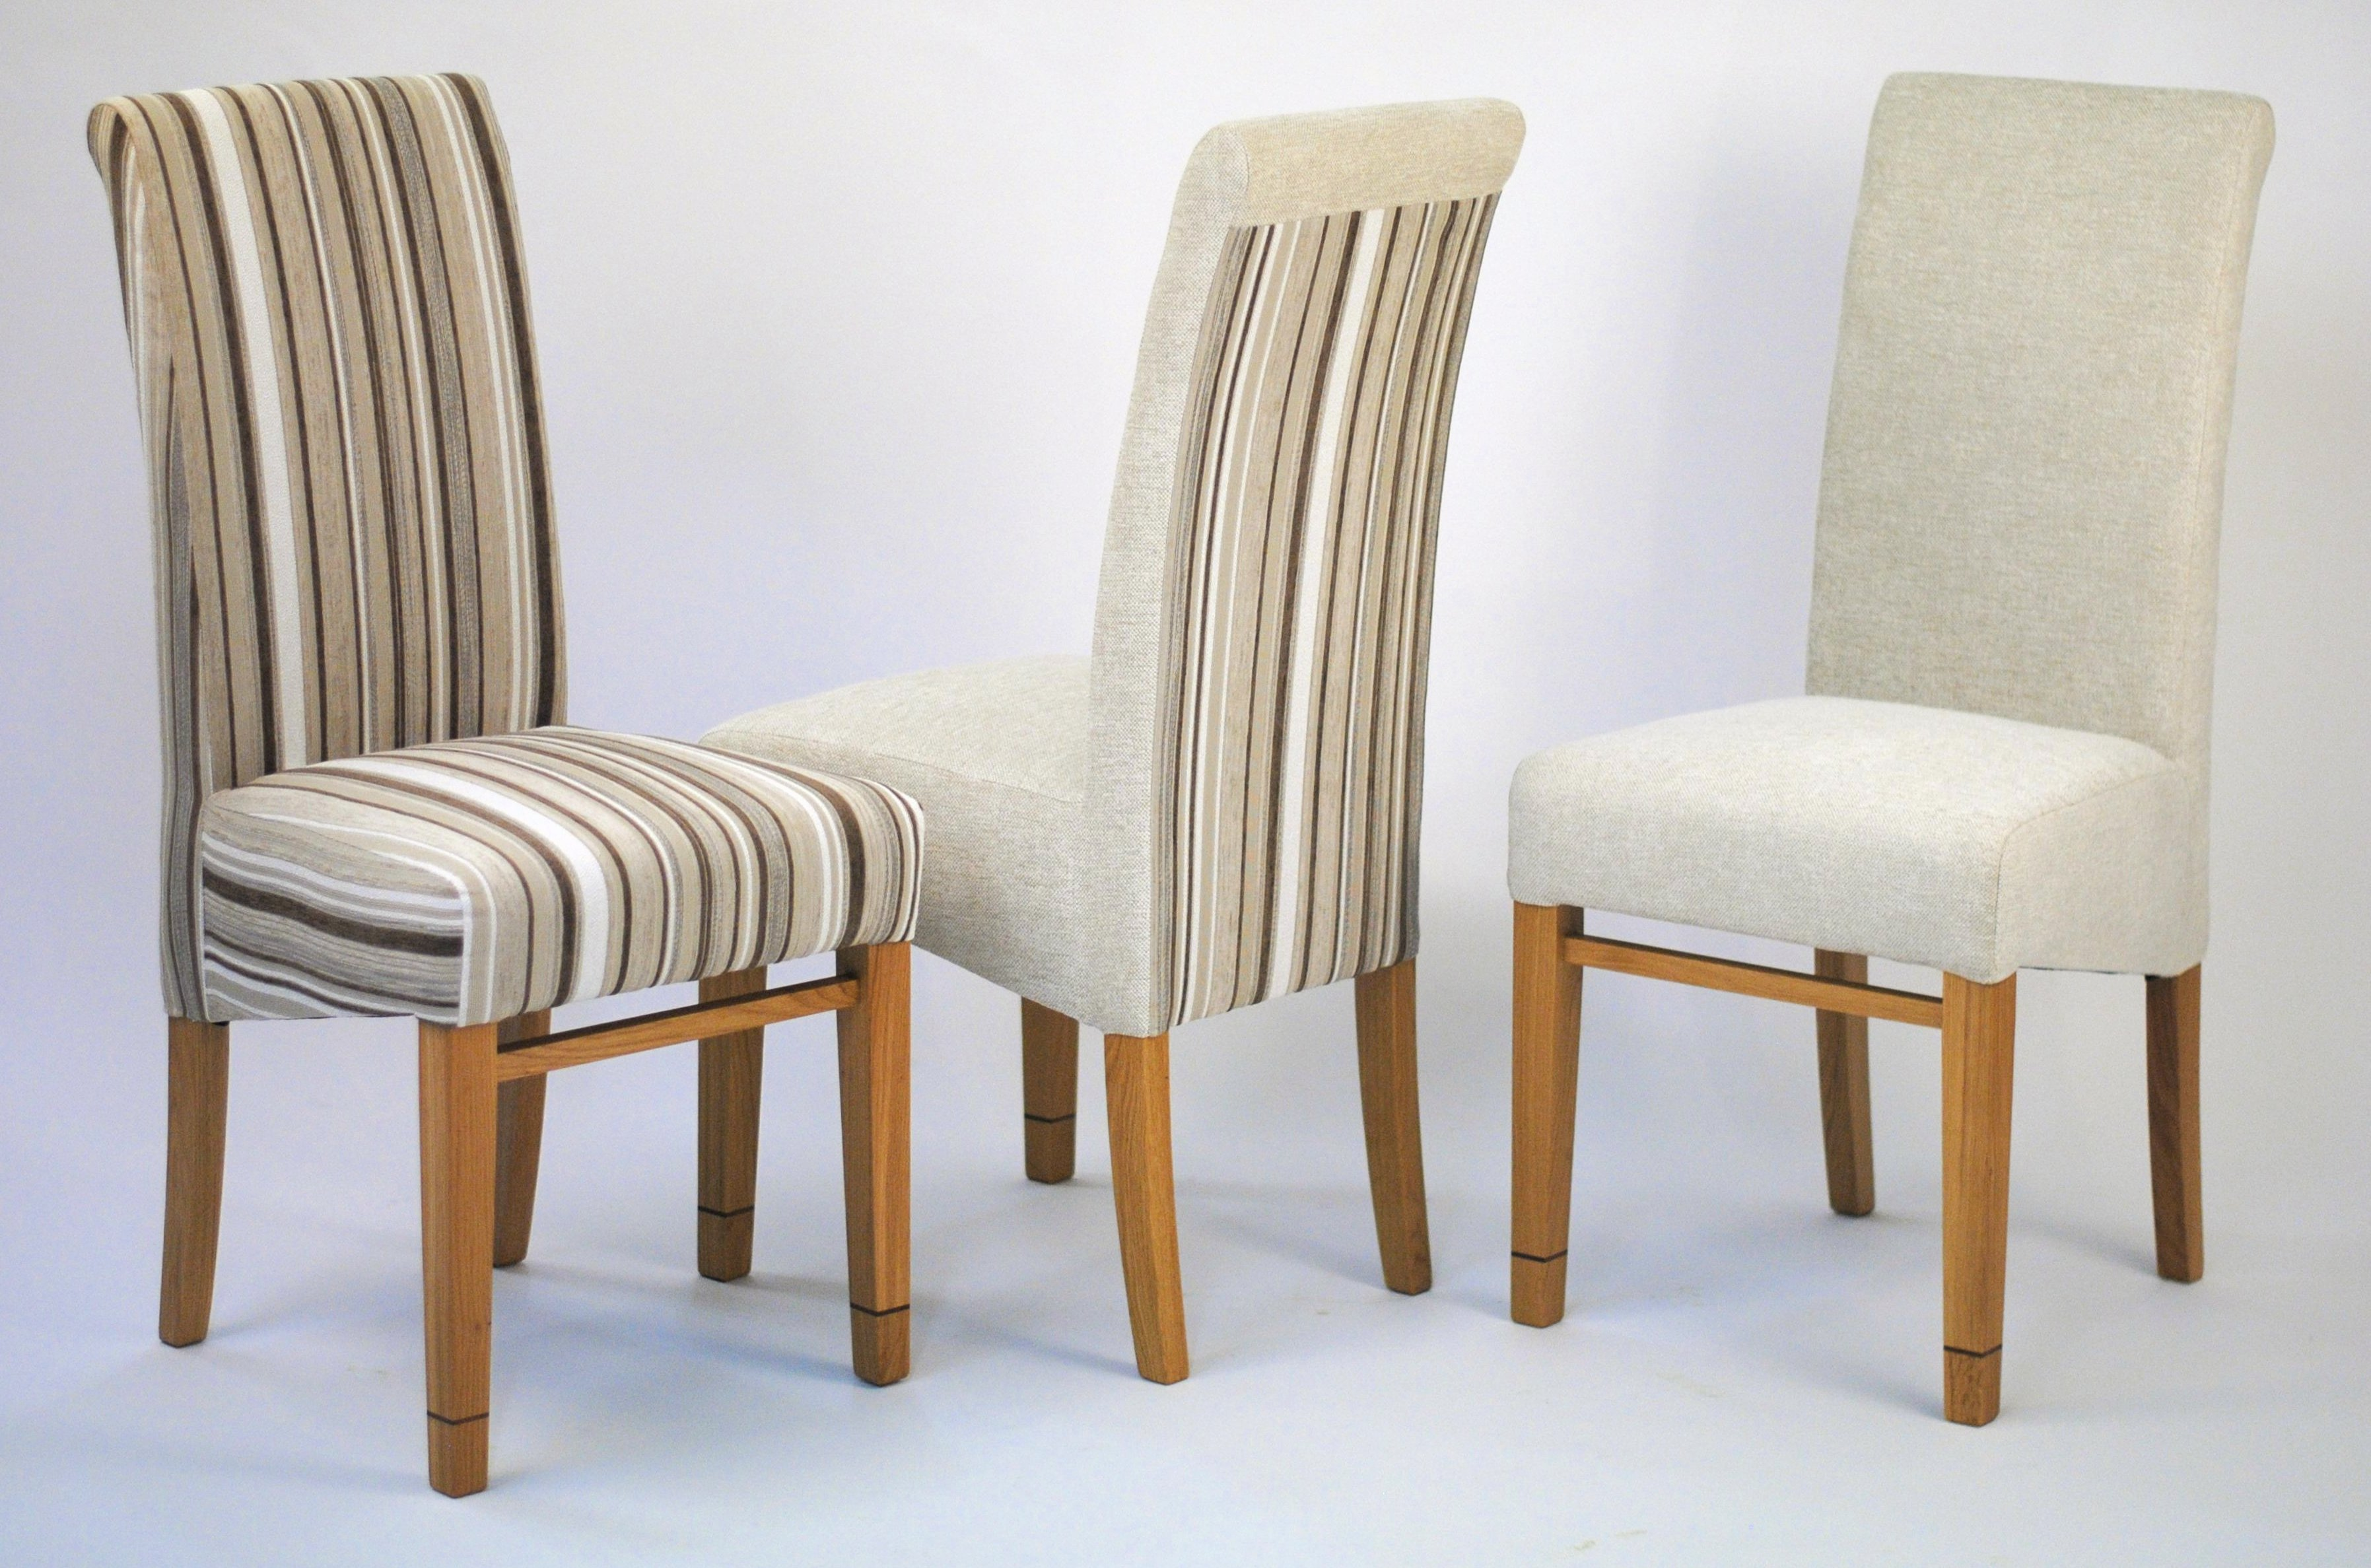 A Pair of Dining Chairs